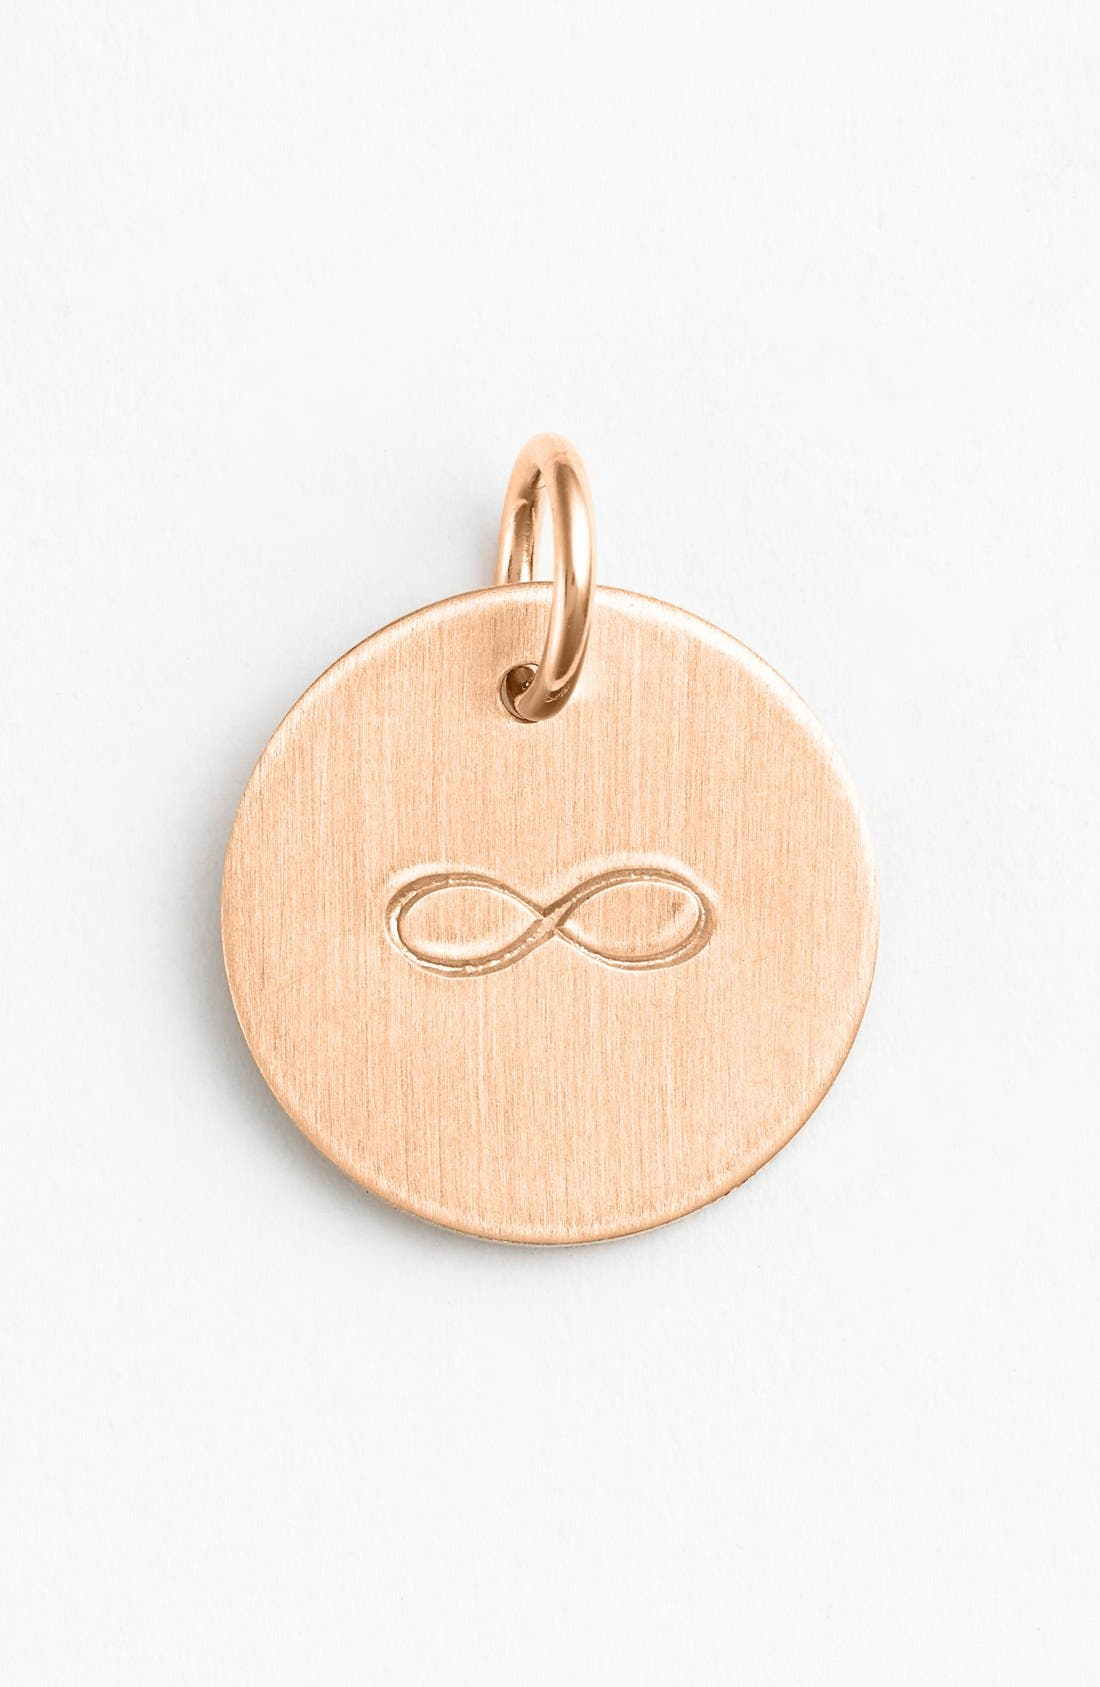 Infinity Stamp Charm,                             Main thumbnail 1, color,                             14K Rose Gold Fill Infinity